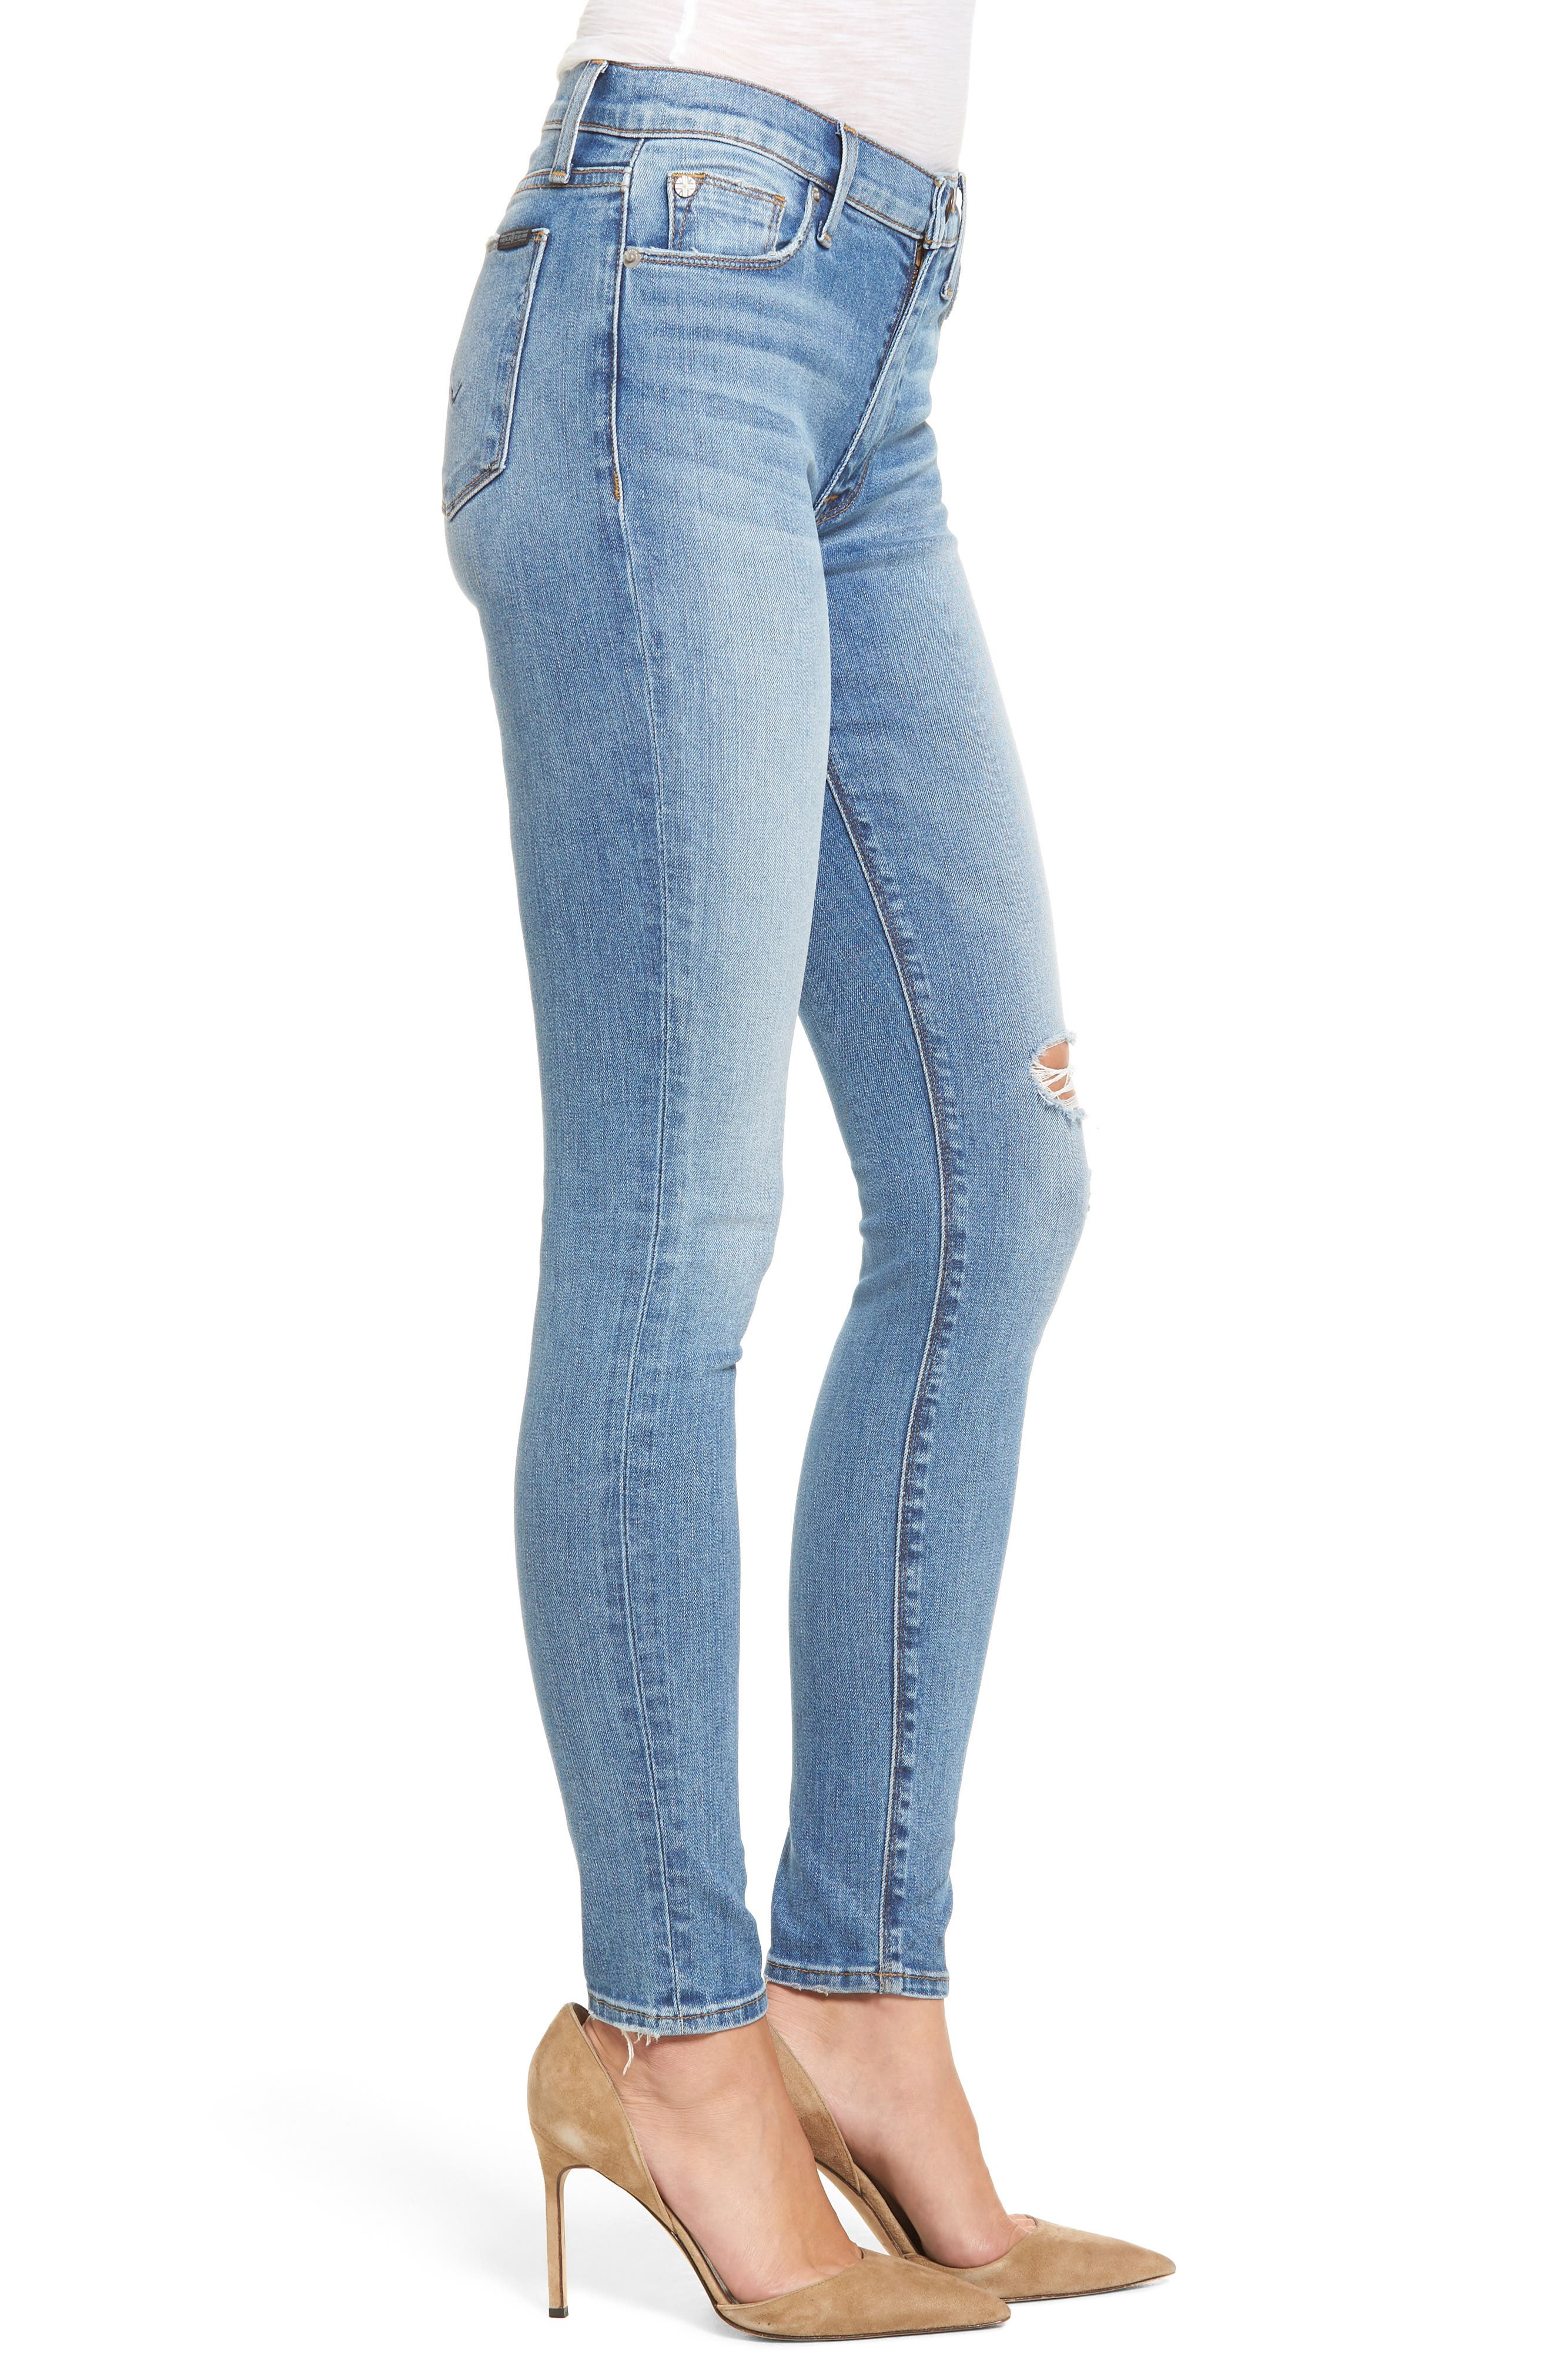 Barbara High Waist Super Skinny Jeans,                             Alternate thumbnail 3, color,                             Movement